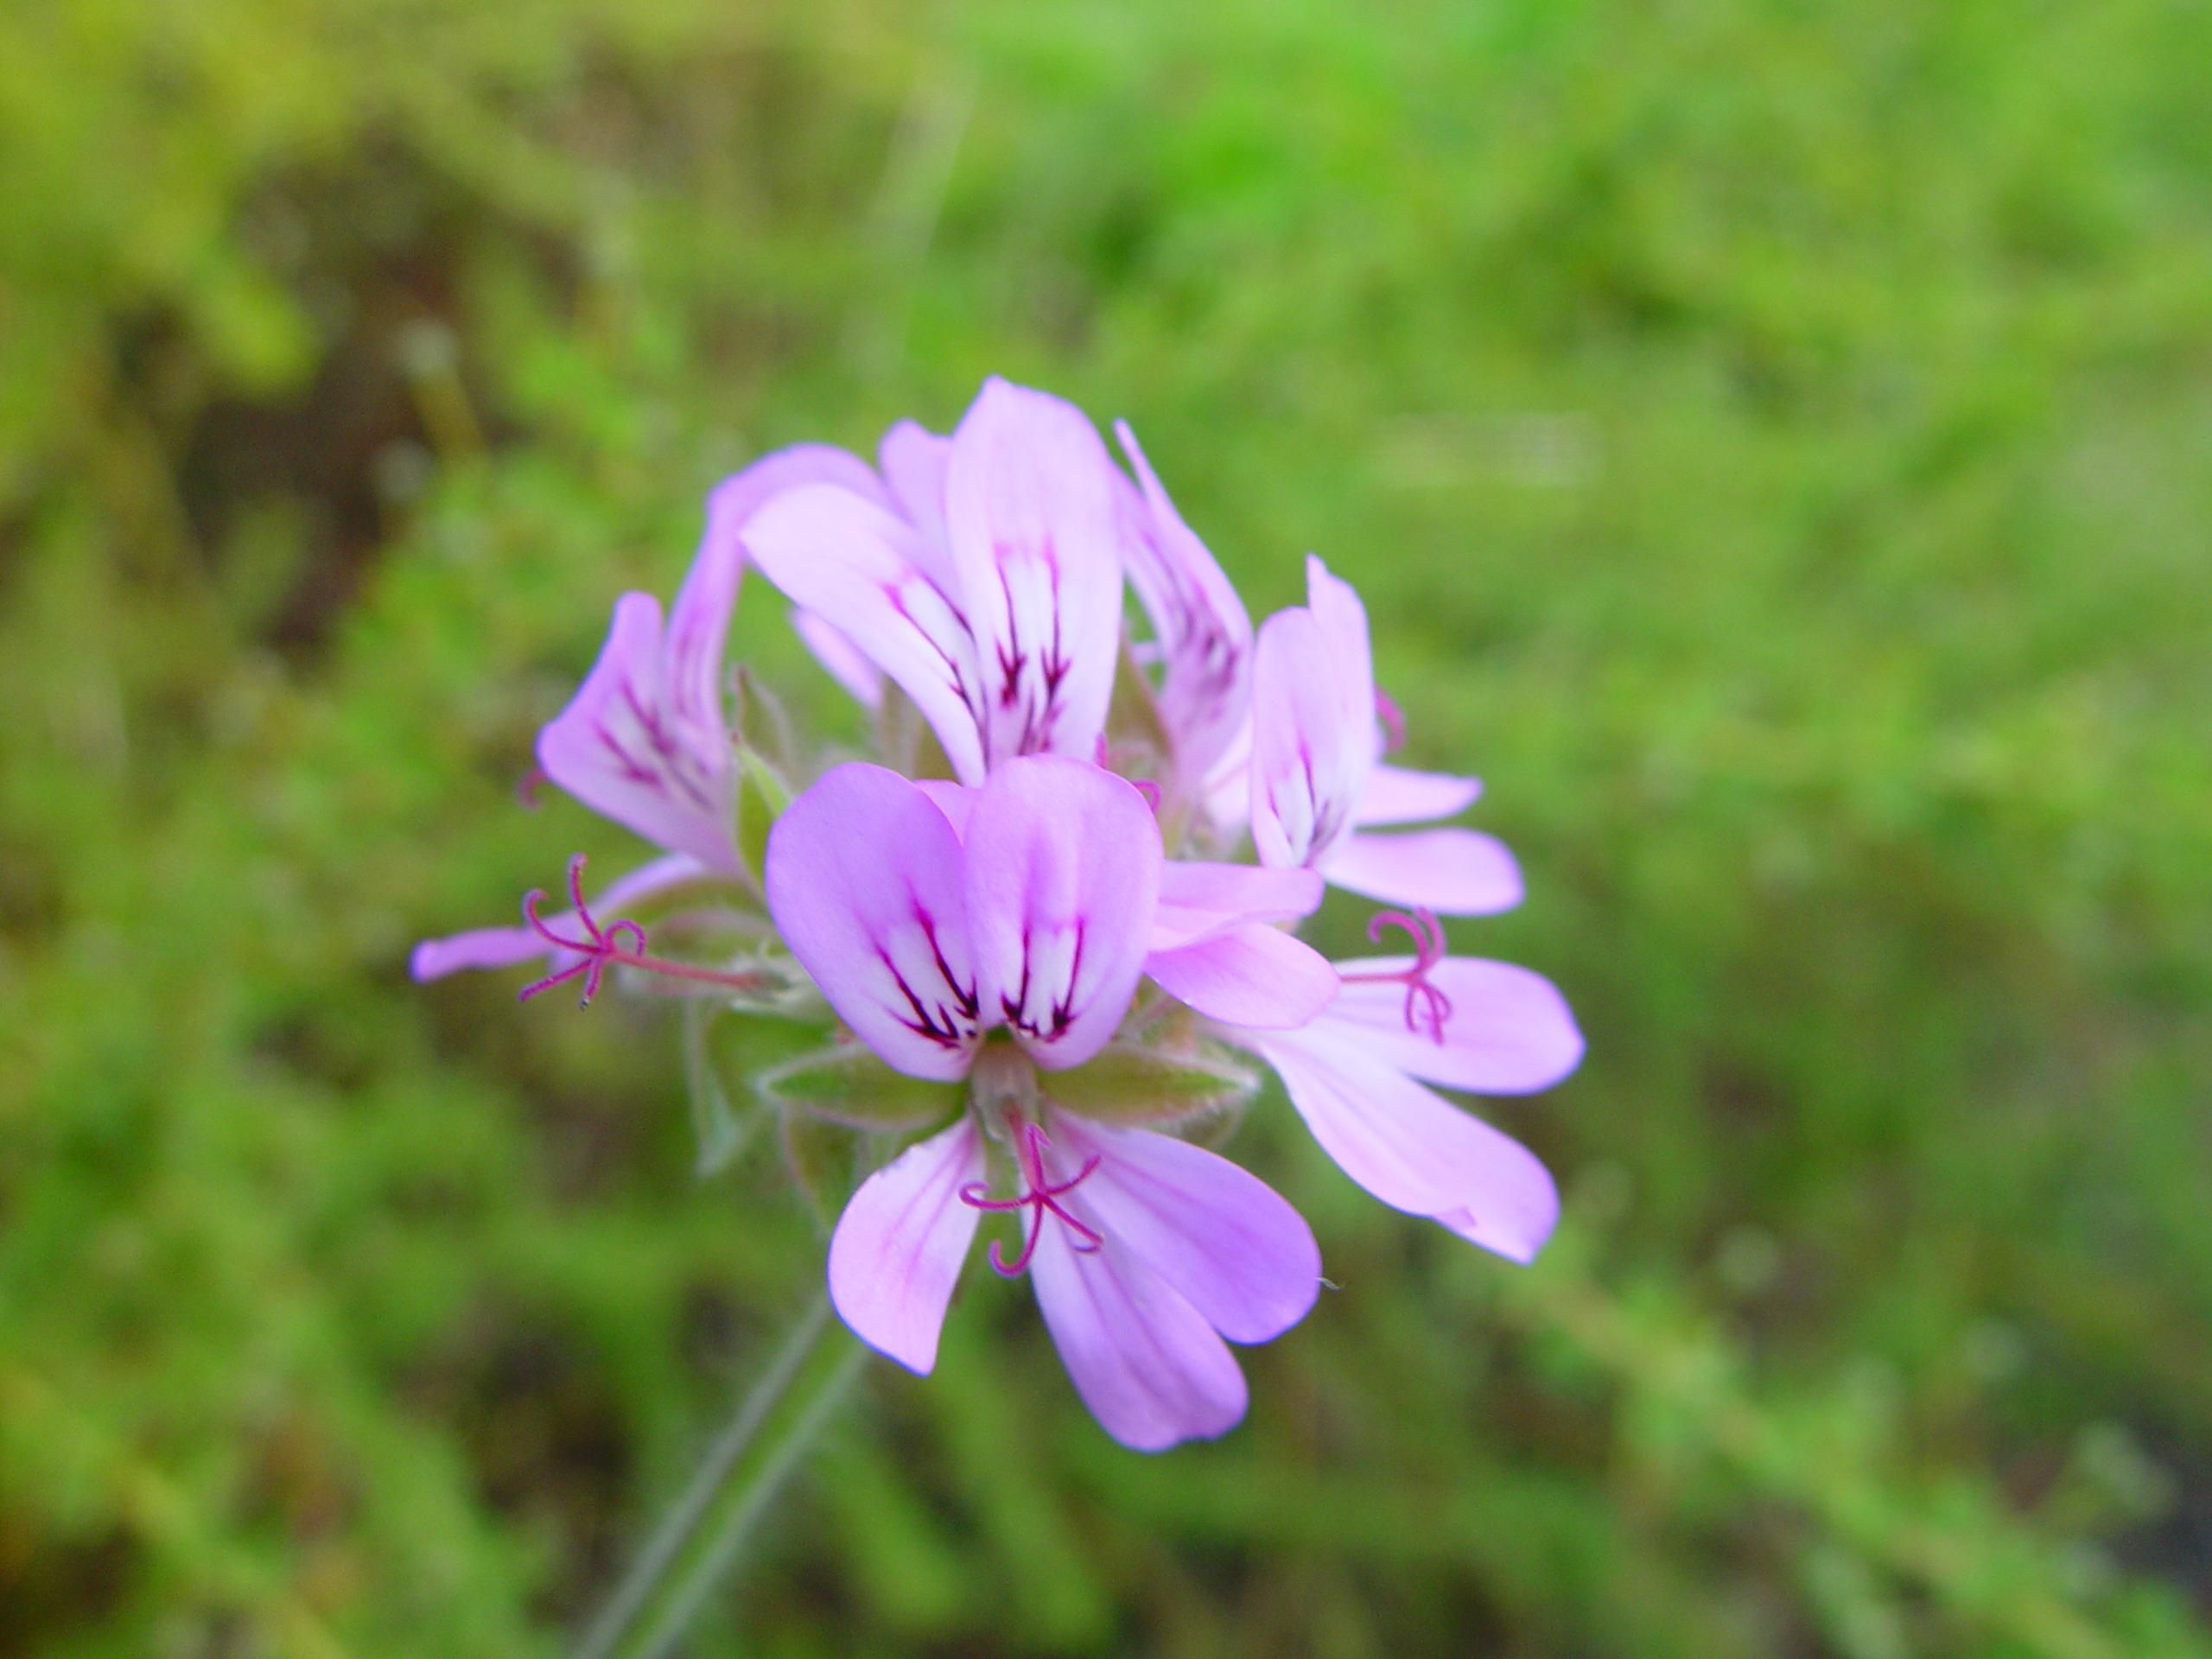 File:Small purple flower.jpg - Wikimedia Commons